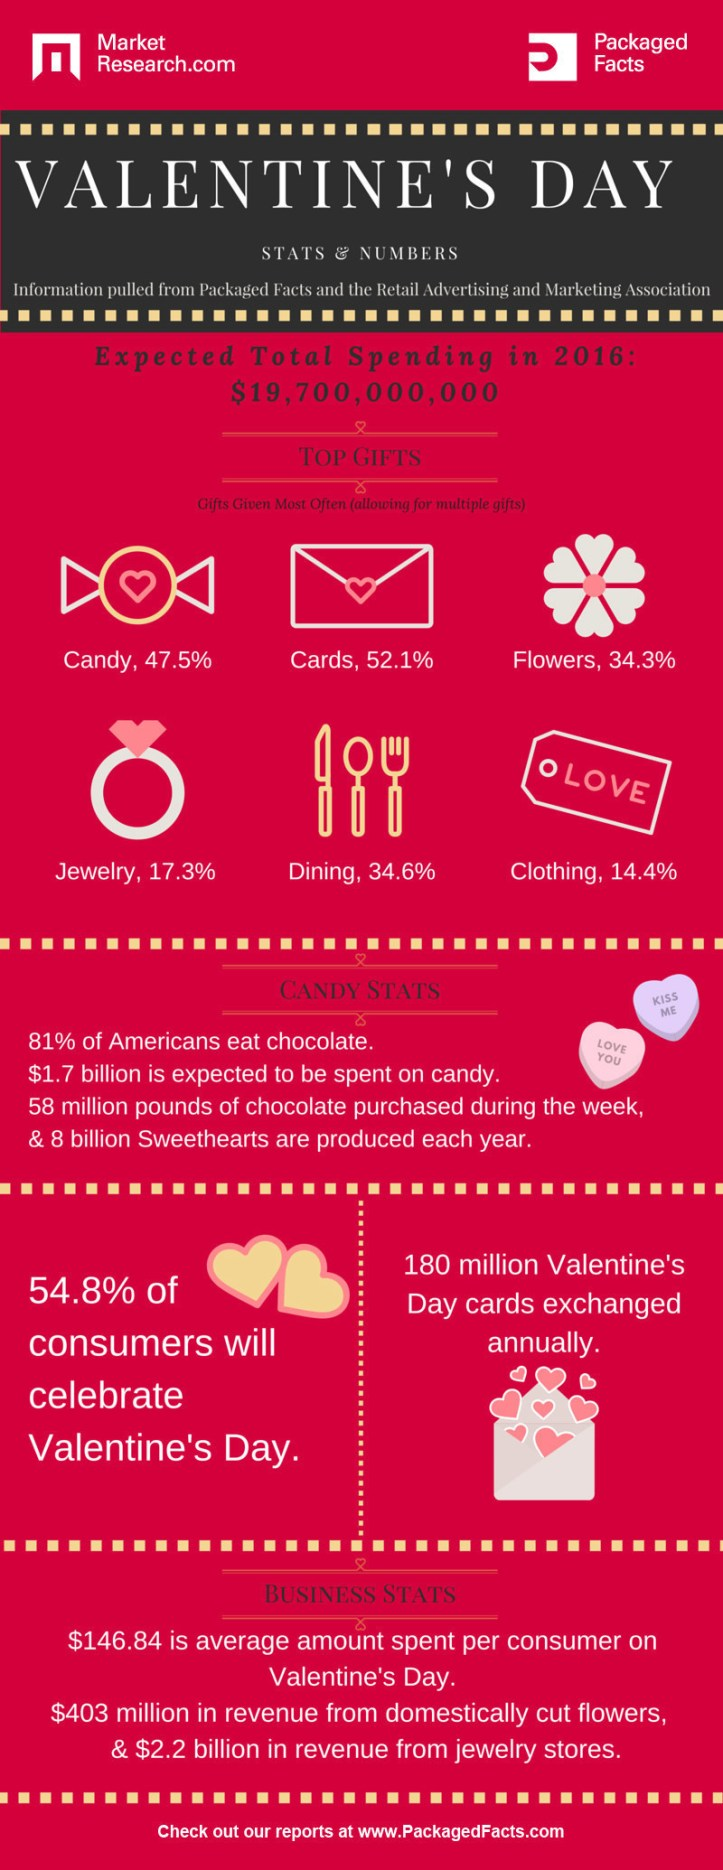 MarketResearch.com: Valentine's Day Spending Expected to Reach $19.7 Billion (PRNewsFoto/MarketResearch.com)